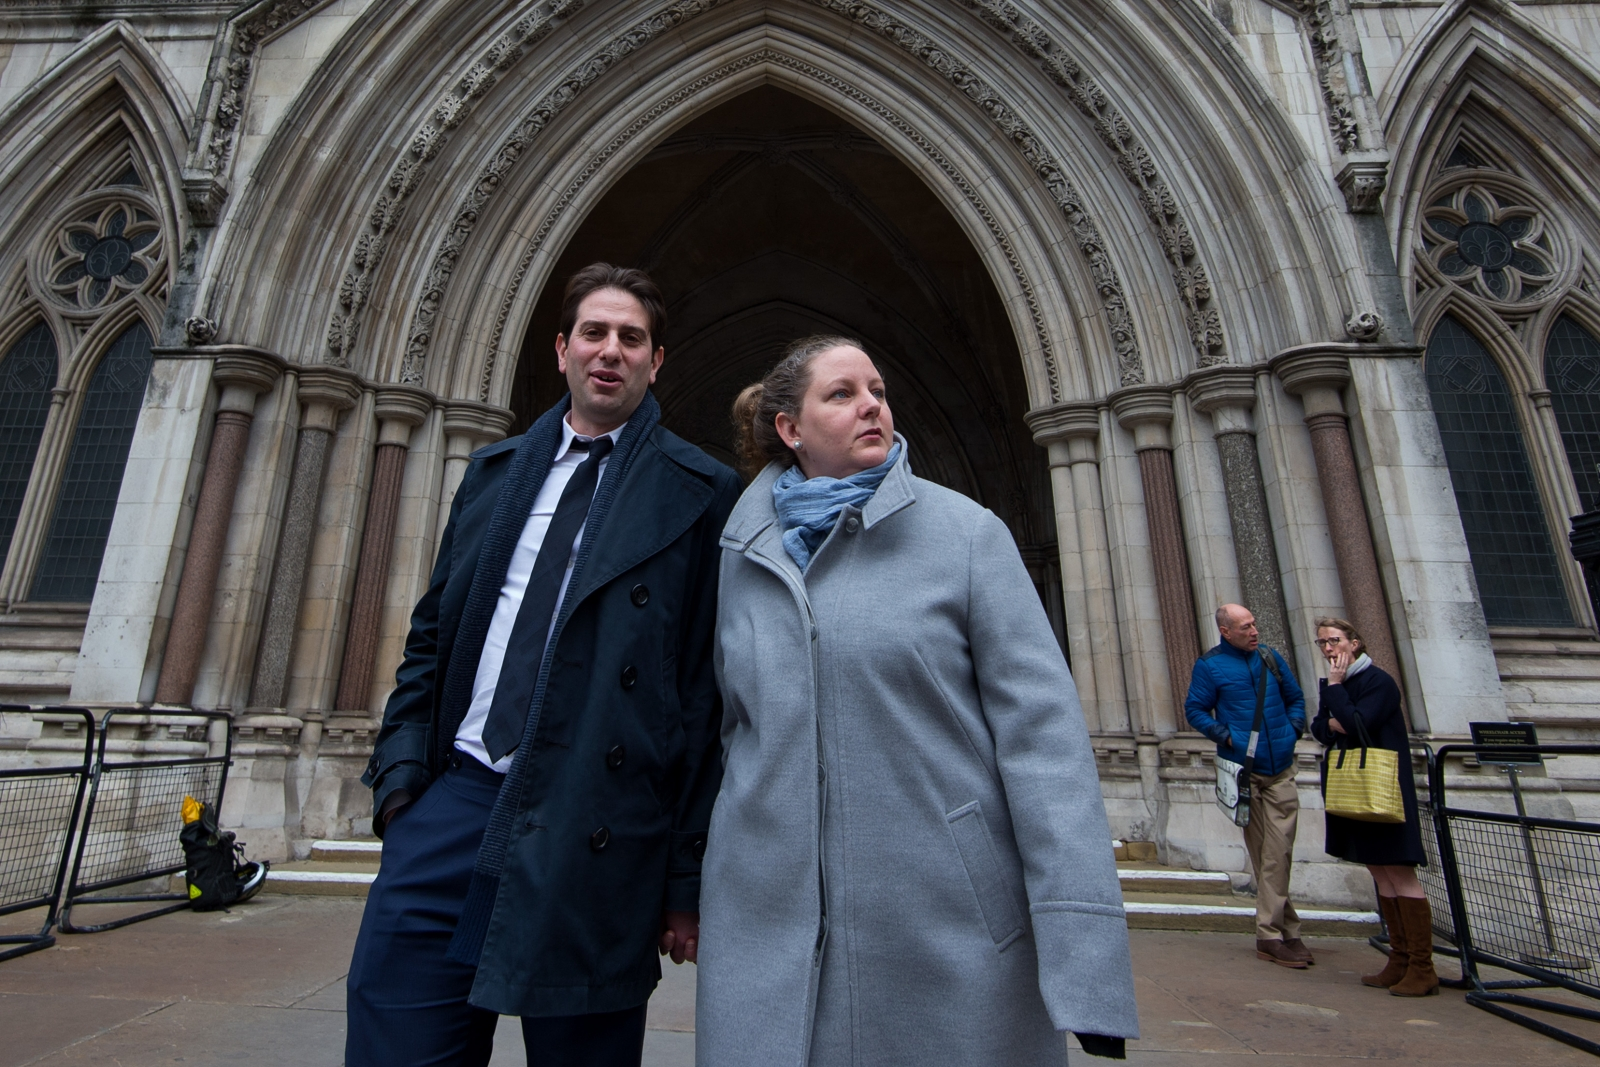 United Kingdom appeals court rules heterosexual couple may not enter into civil partnership